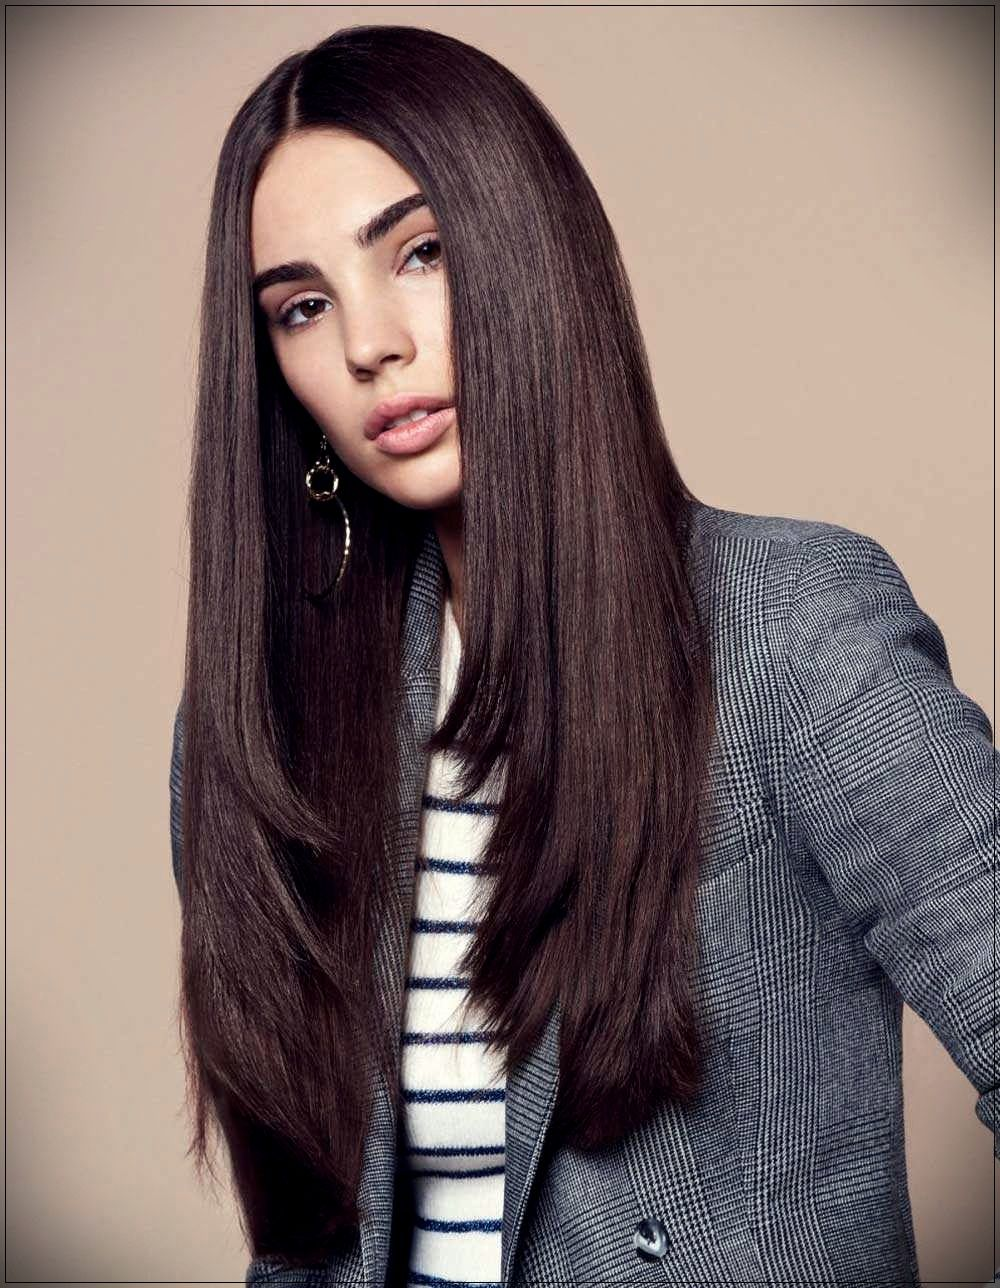 Pin on 2019 Hair Trends